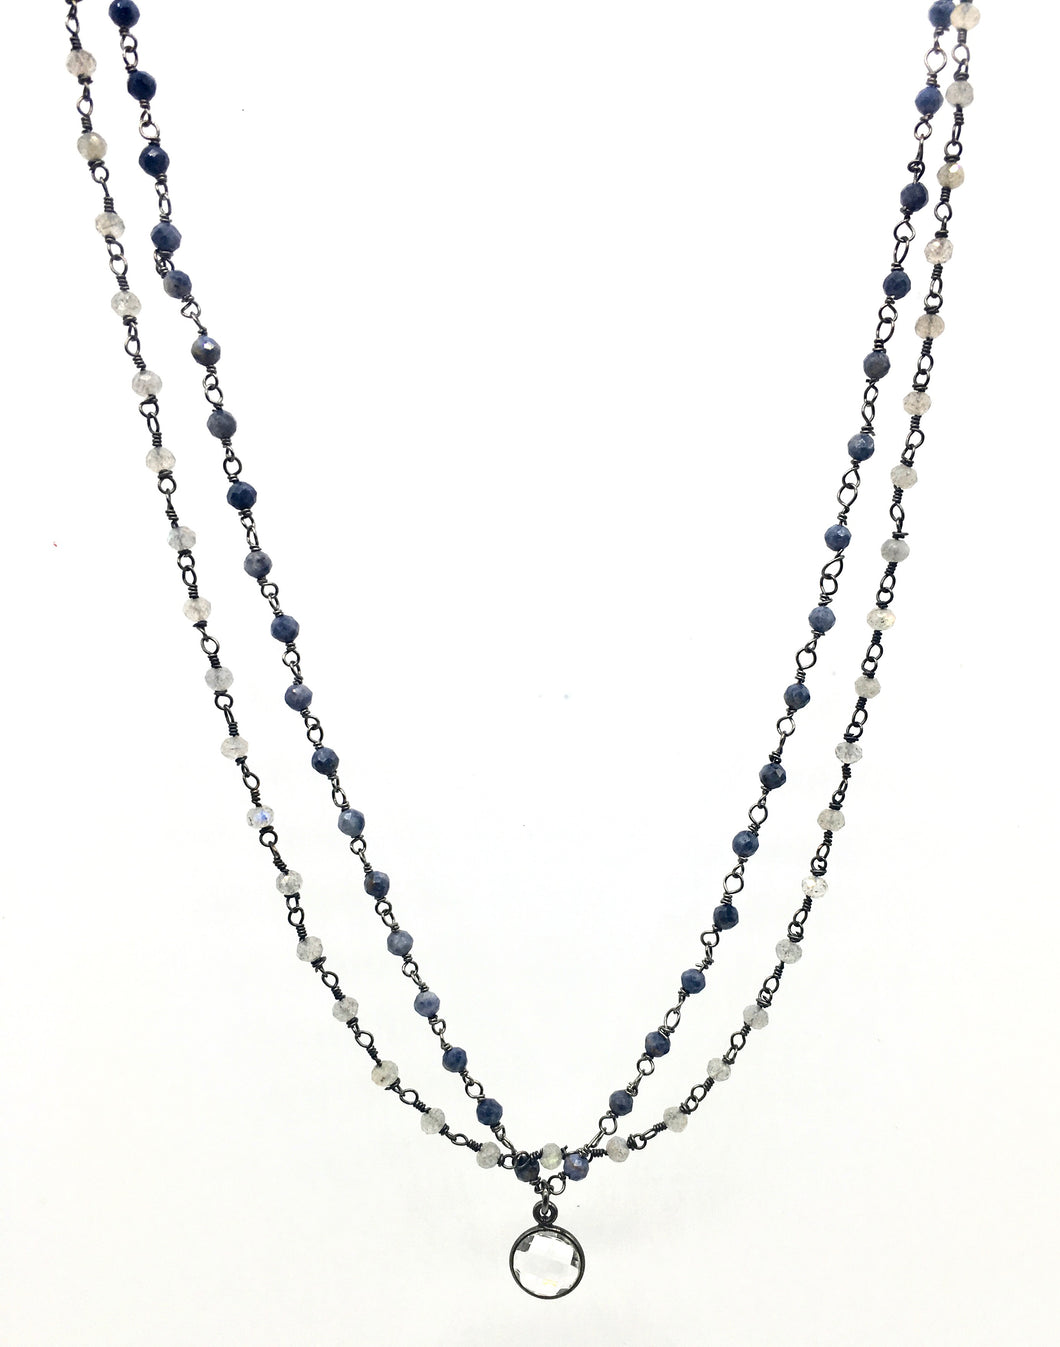 Double Strand Necklaces with Quartz